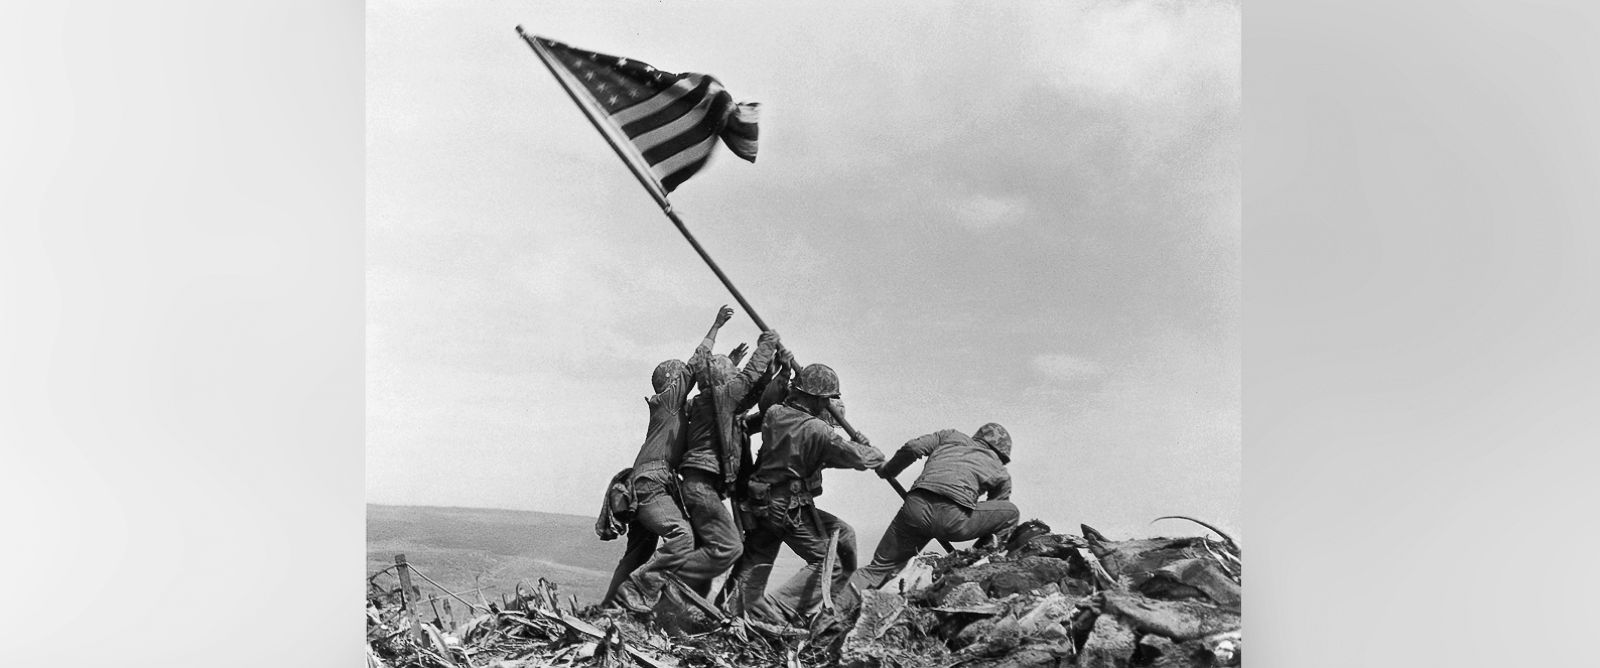 'Flags of Our Fathers' Author Convinced His Father Was Not in Iconic Iwo Jima Photo